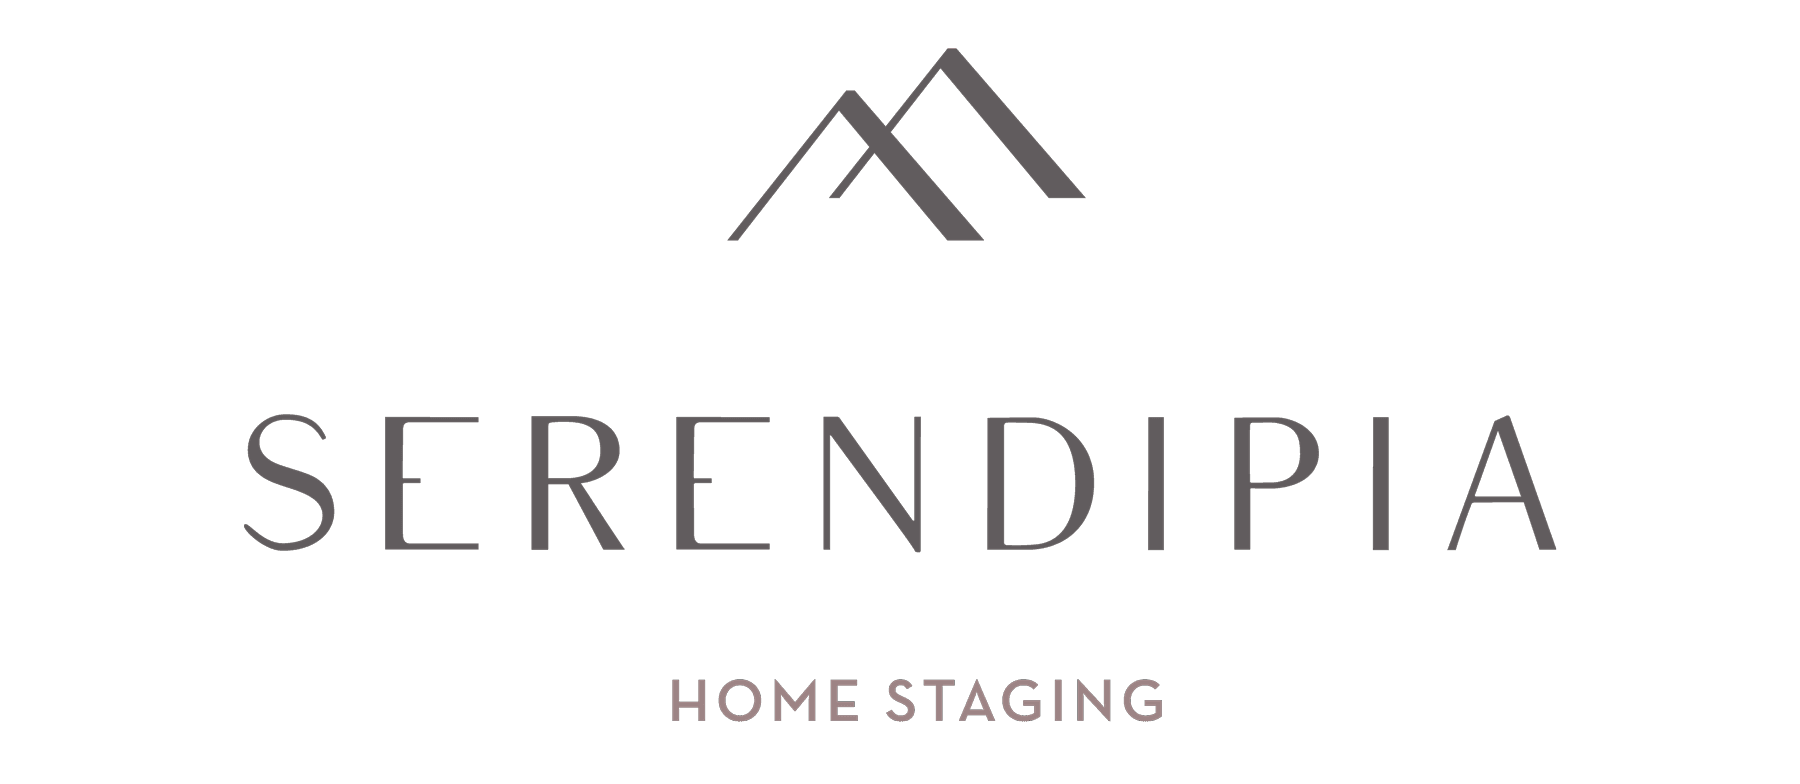 Serendipia Home Staging